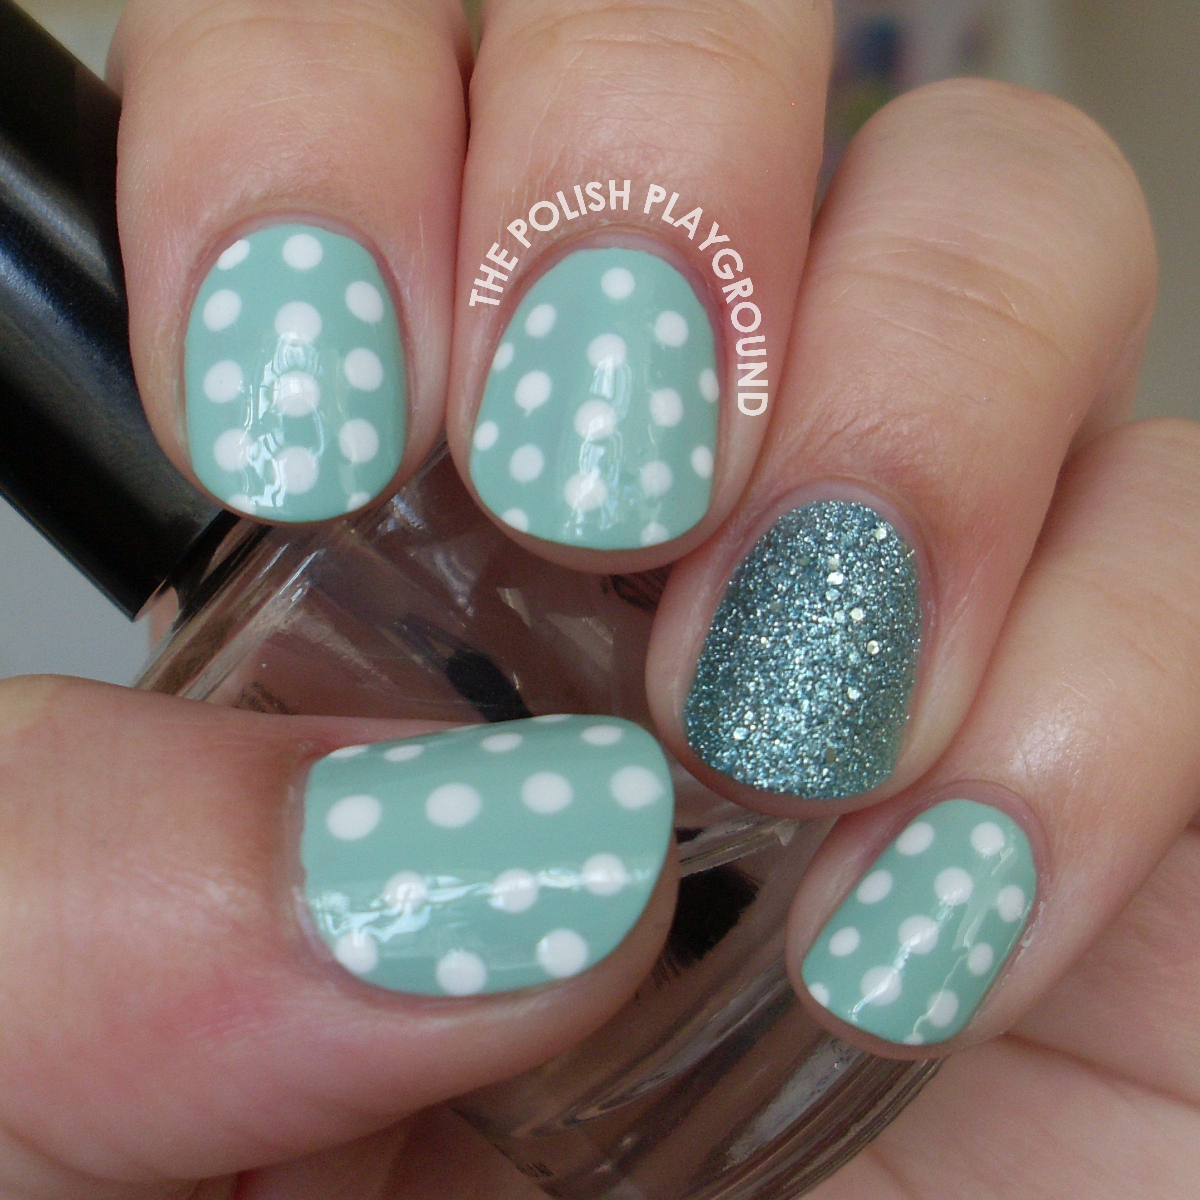 The Polish Playground: Mint And White Polka Dots